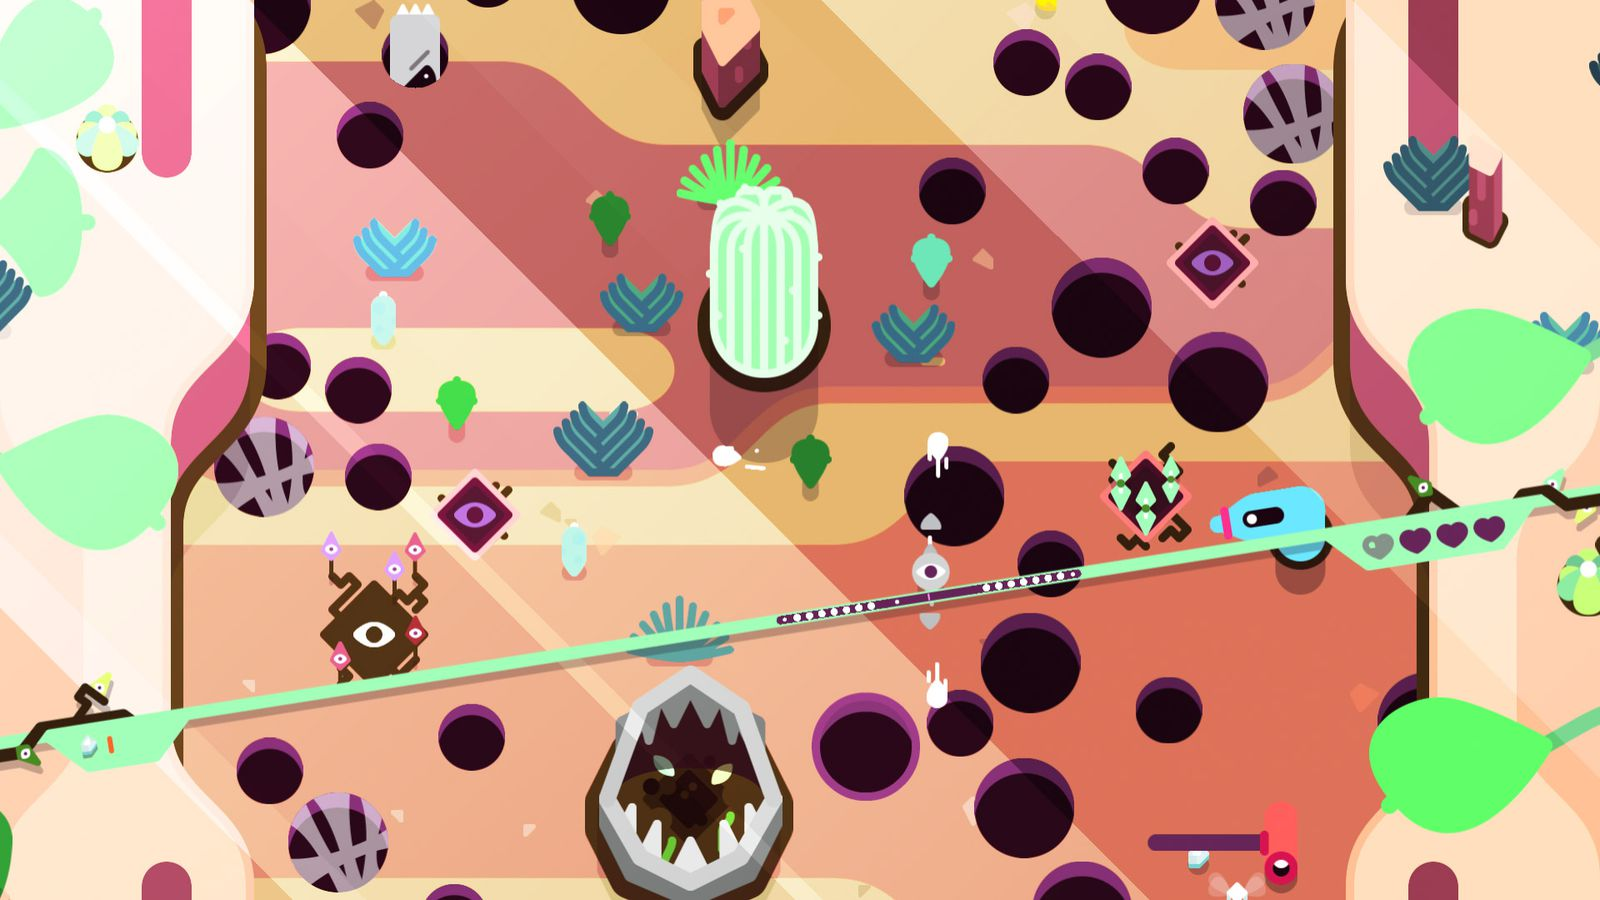 TumbleSeed may never recoup its costs, team says